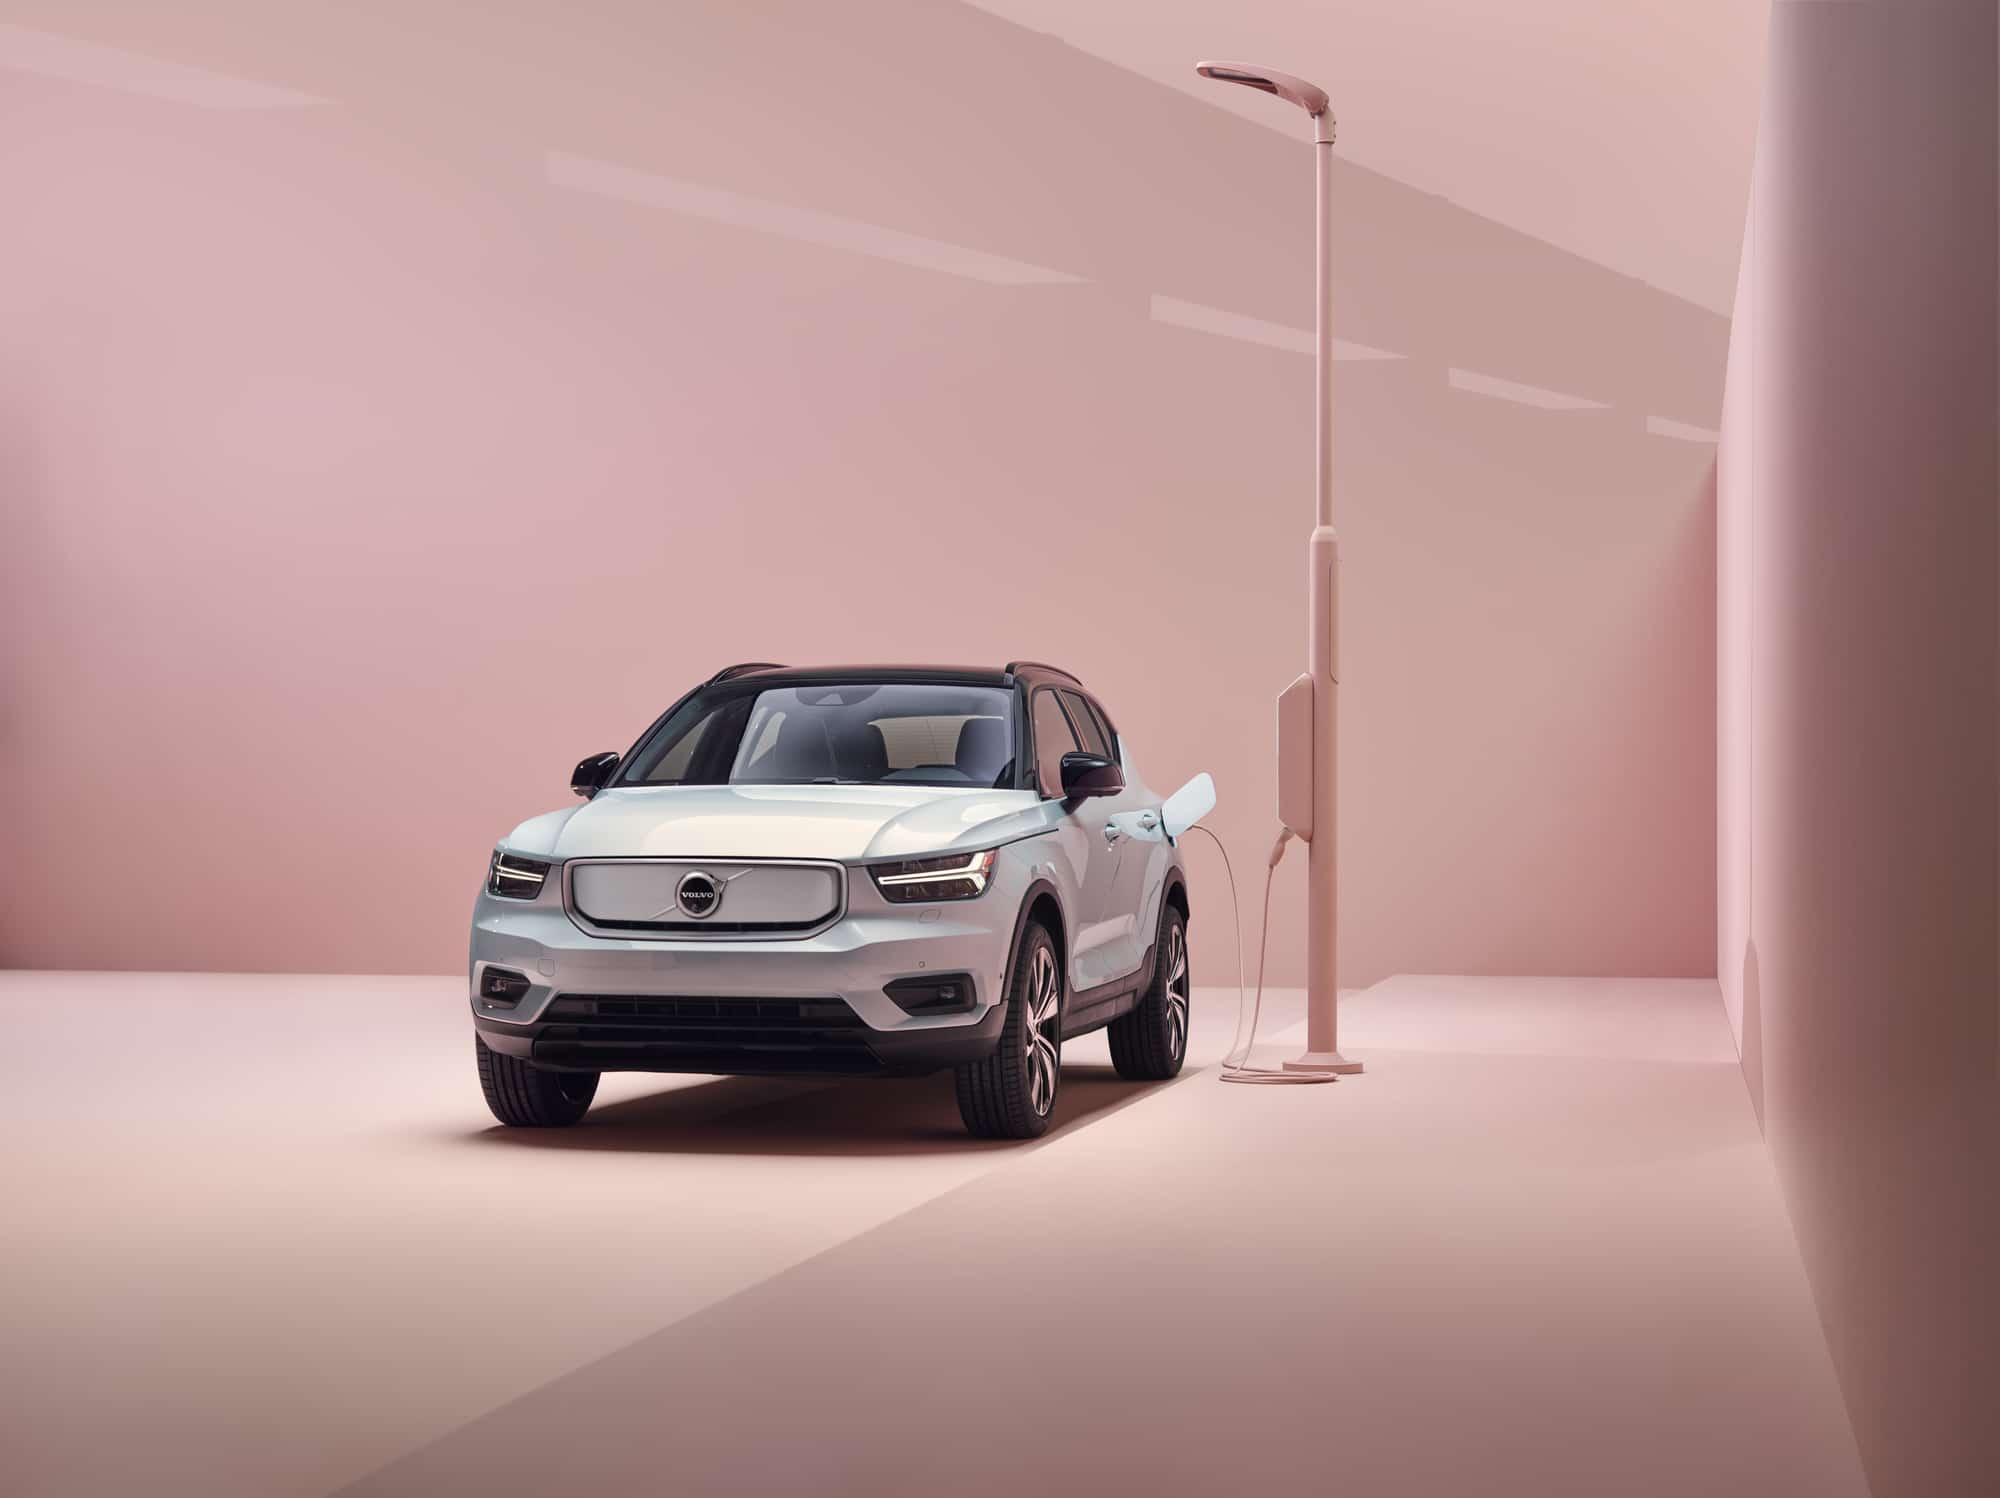 white ev charging on pink charging station with pink background